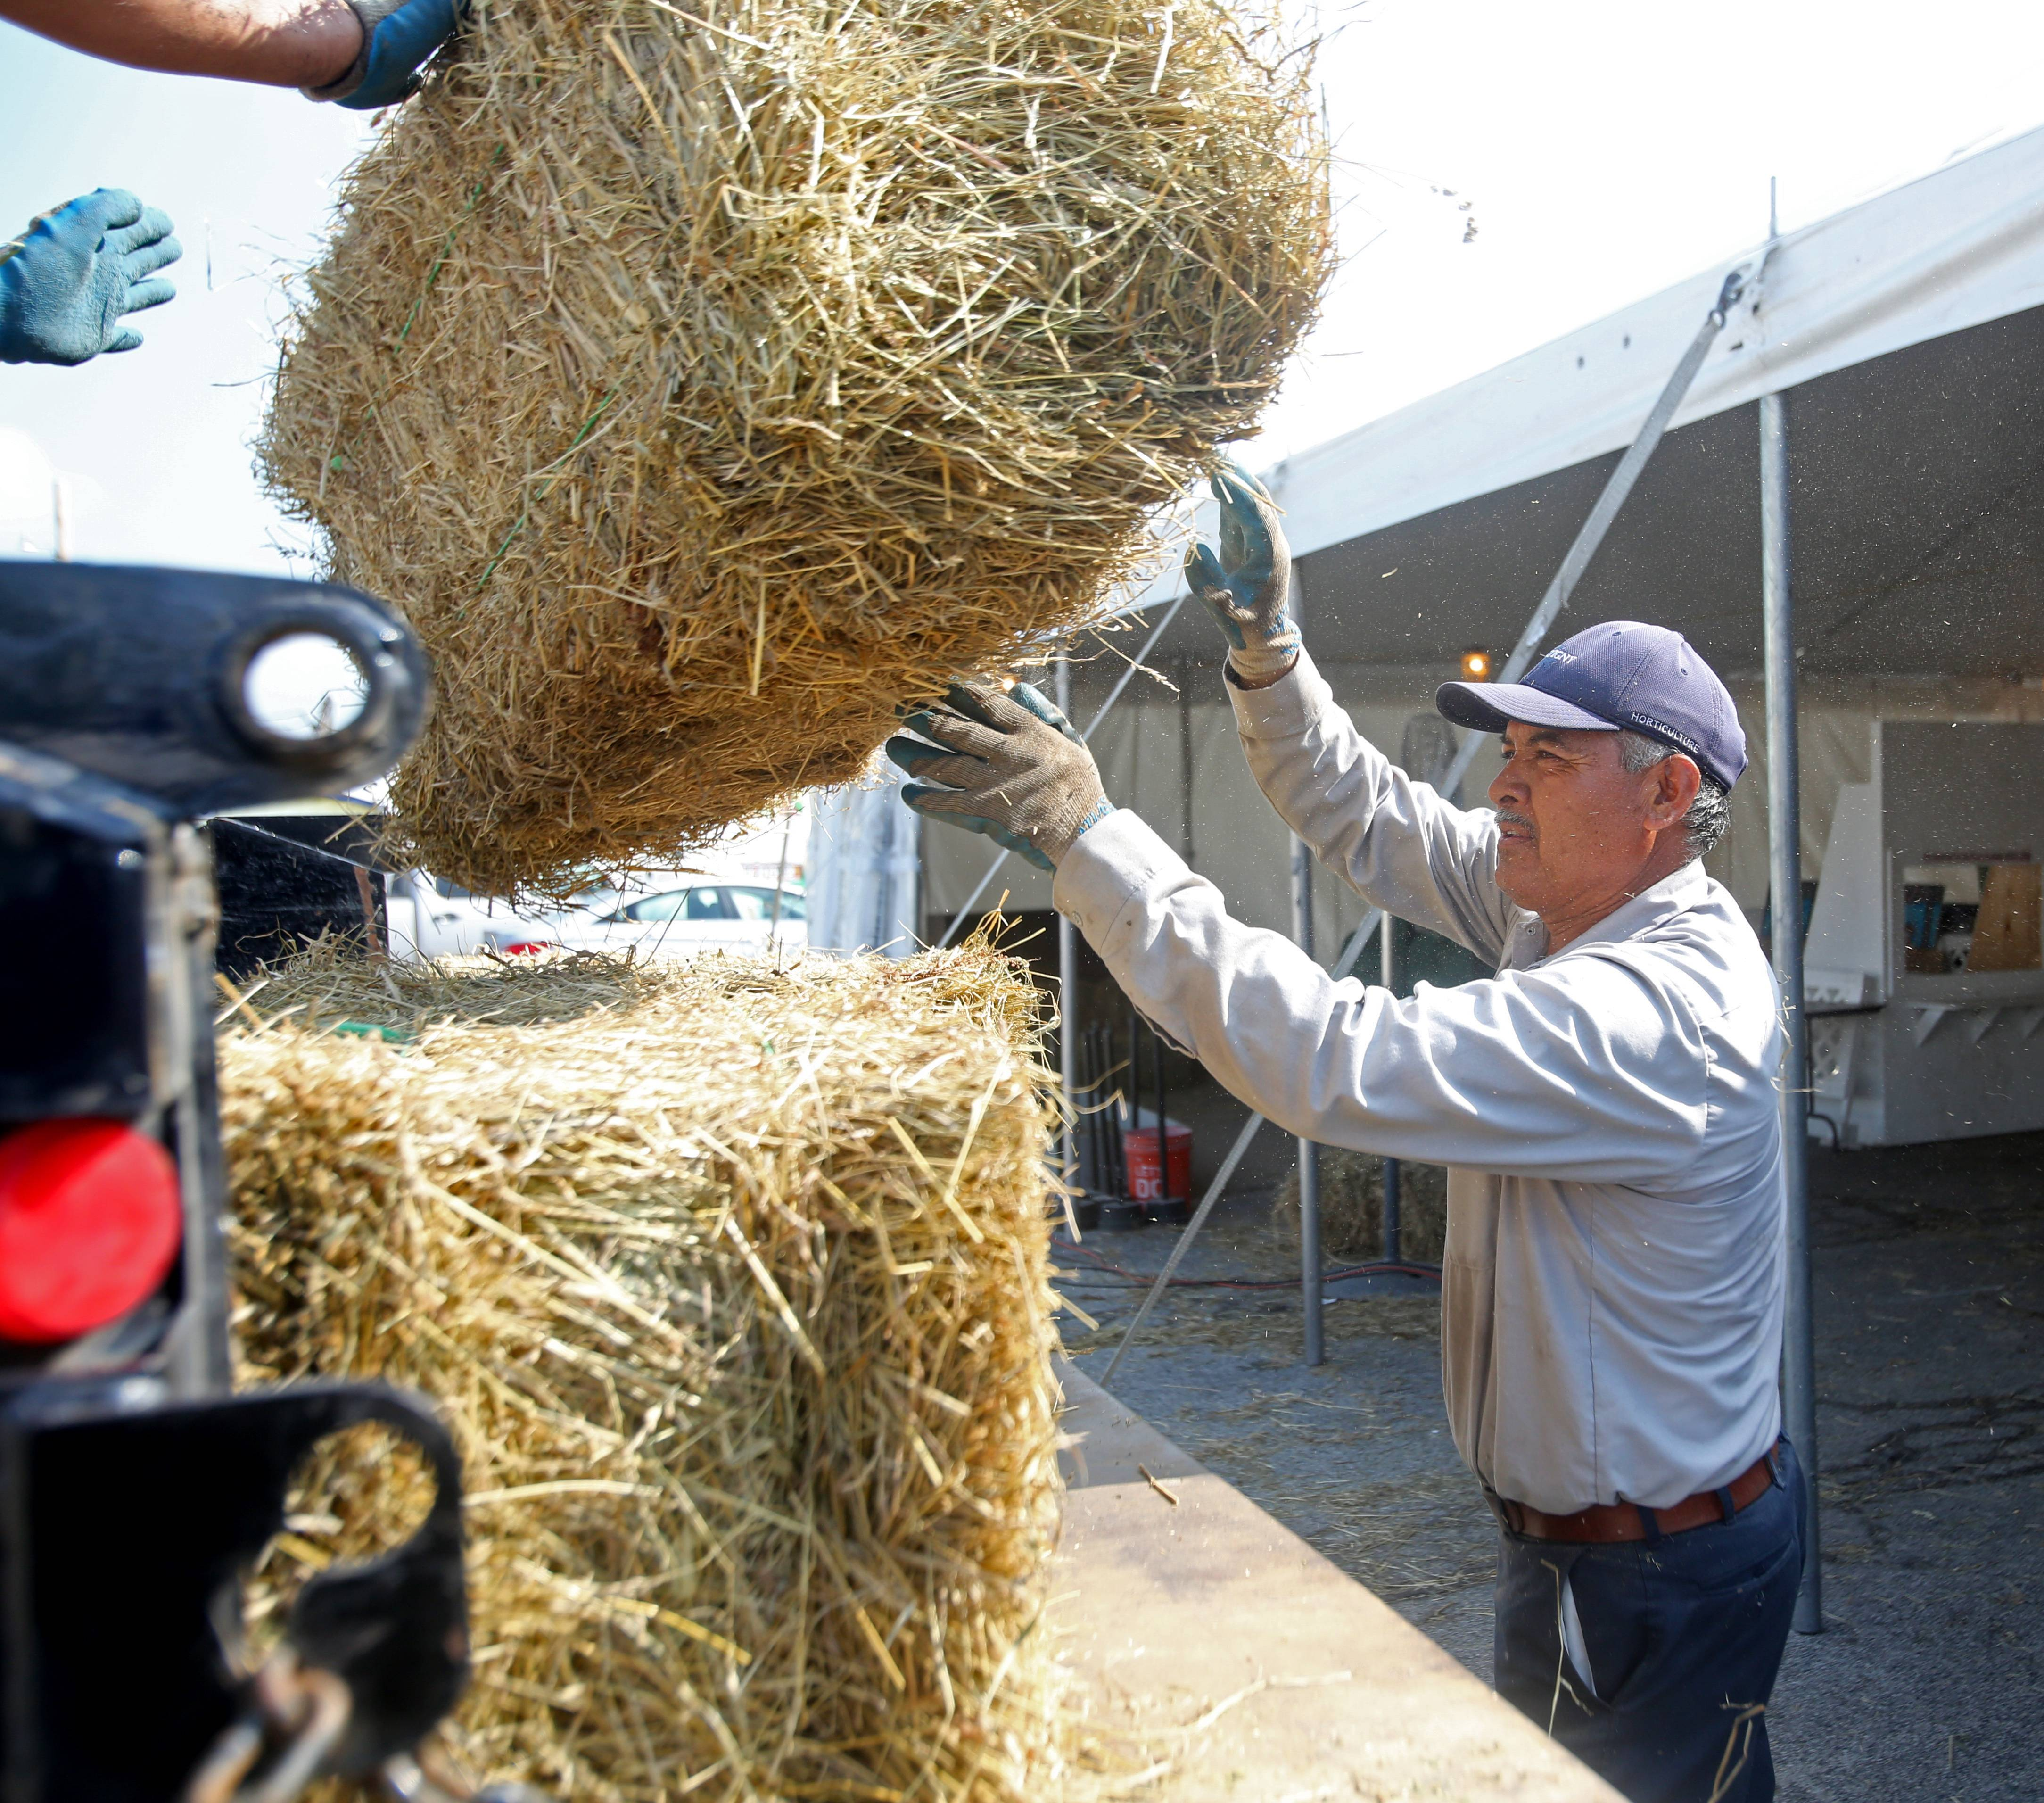 Alberto Banullo of Cantigny loads bails of hay from under a show tent Monday as cleanup continues following the DuPage County Fair, which ended Sunday.